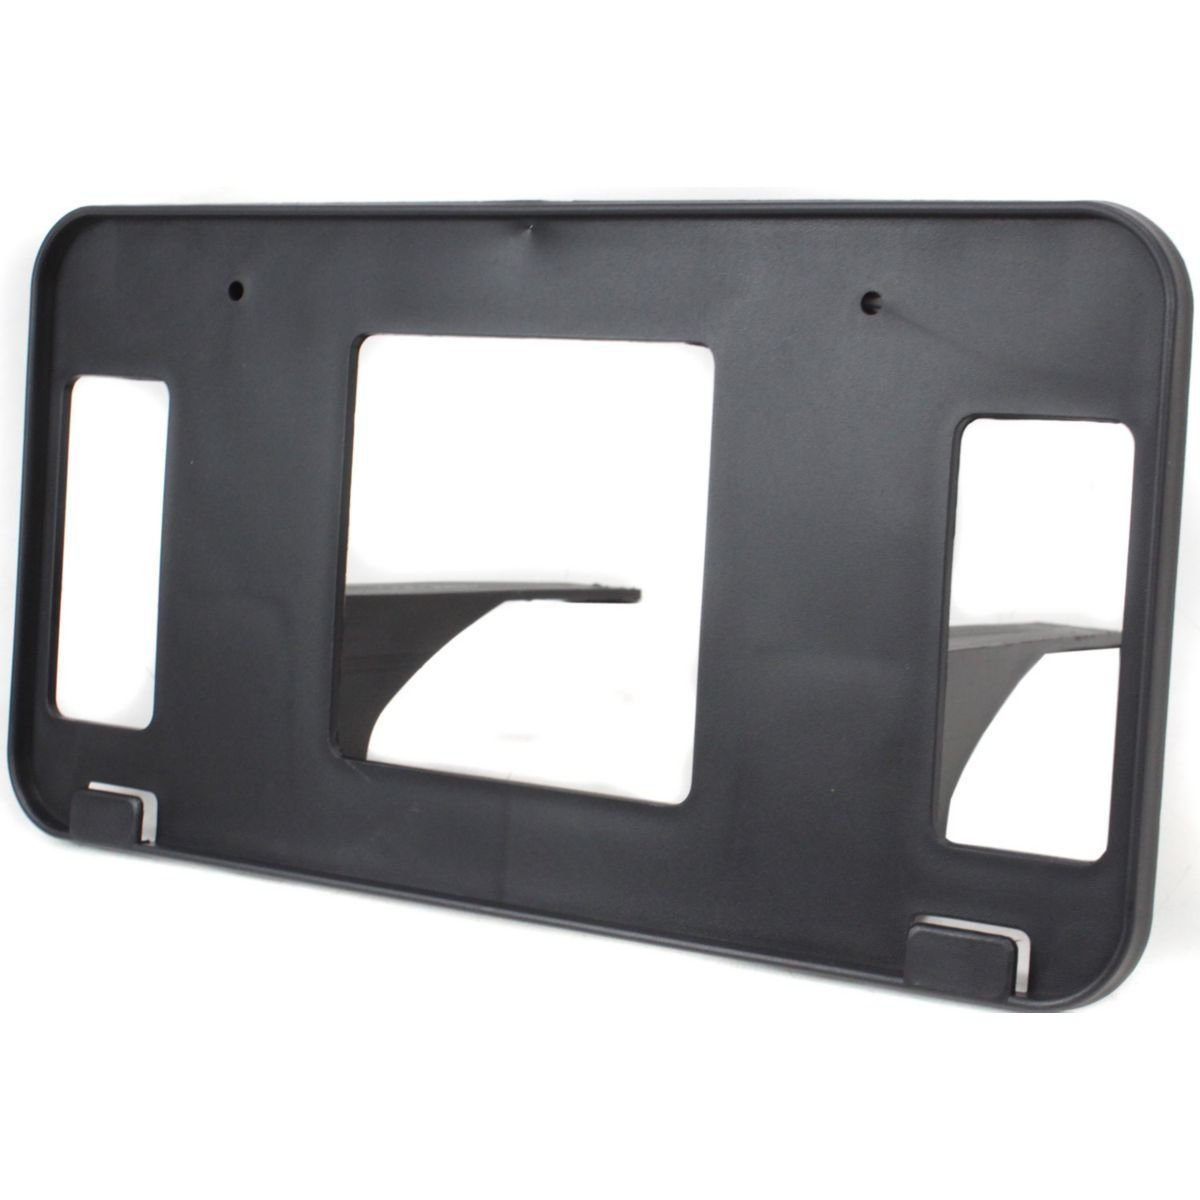 1999-2003 Ford F150 1999-2002 Expedition Front License Plate Tag Bracket Holder FO1068120 XL3Z17A385AA